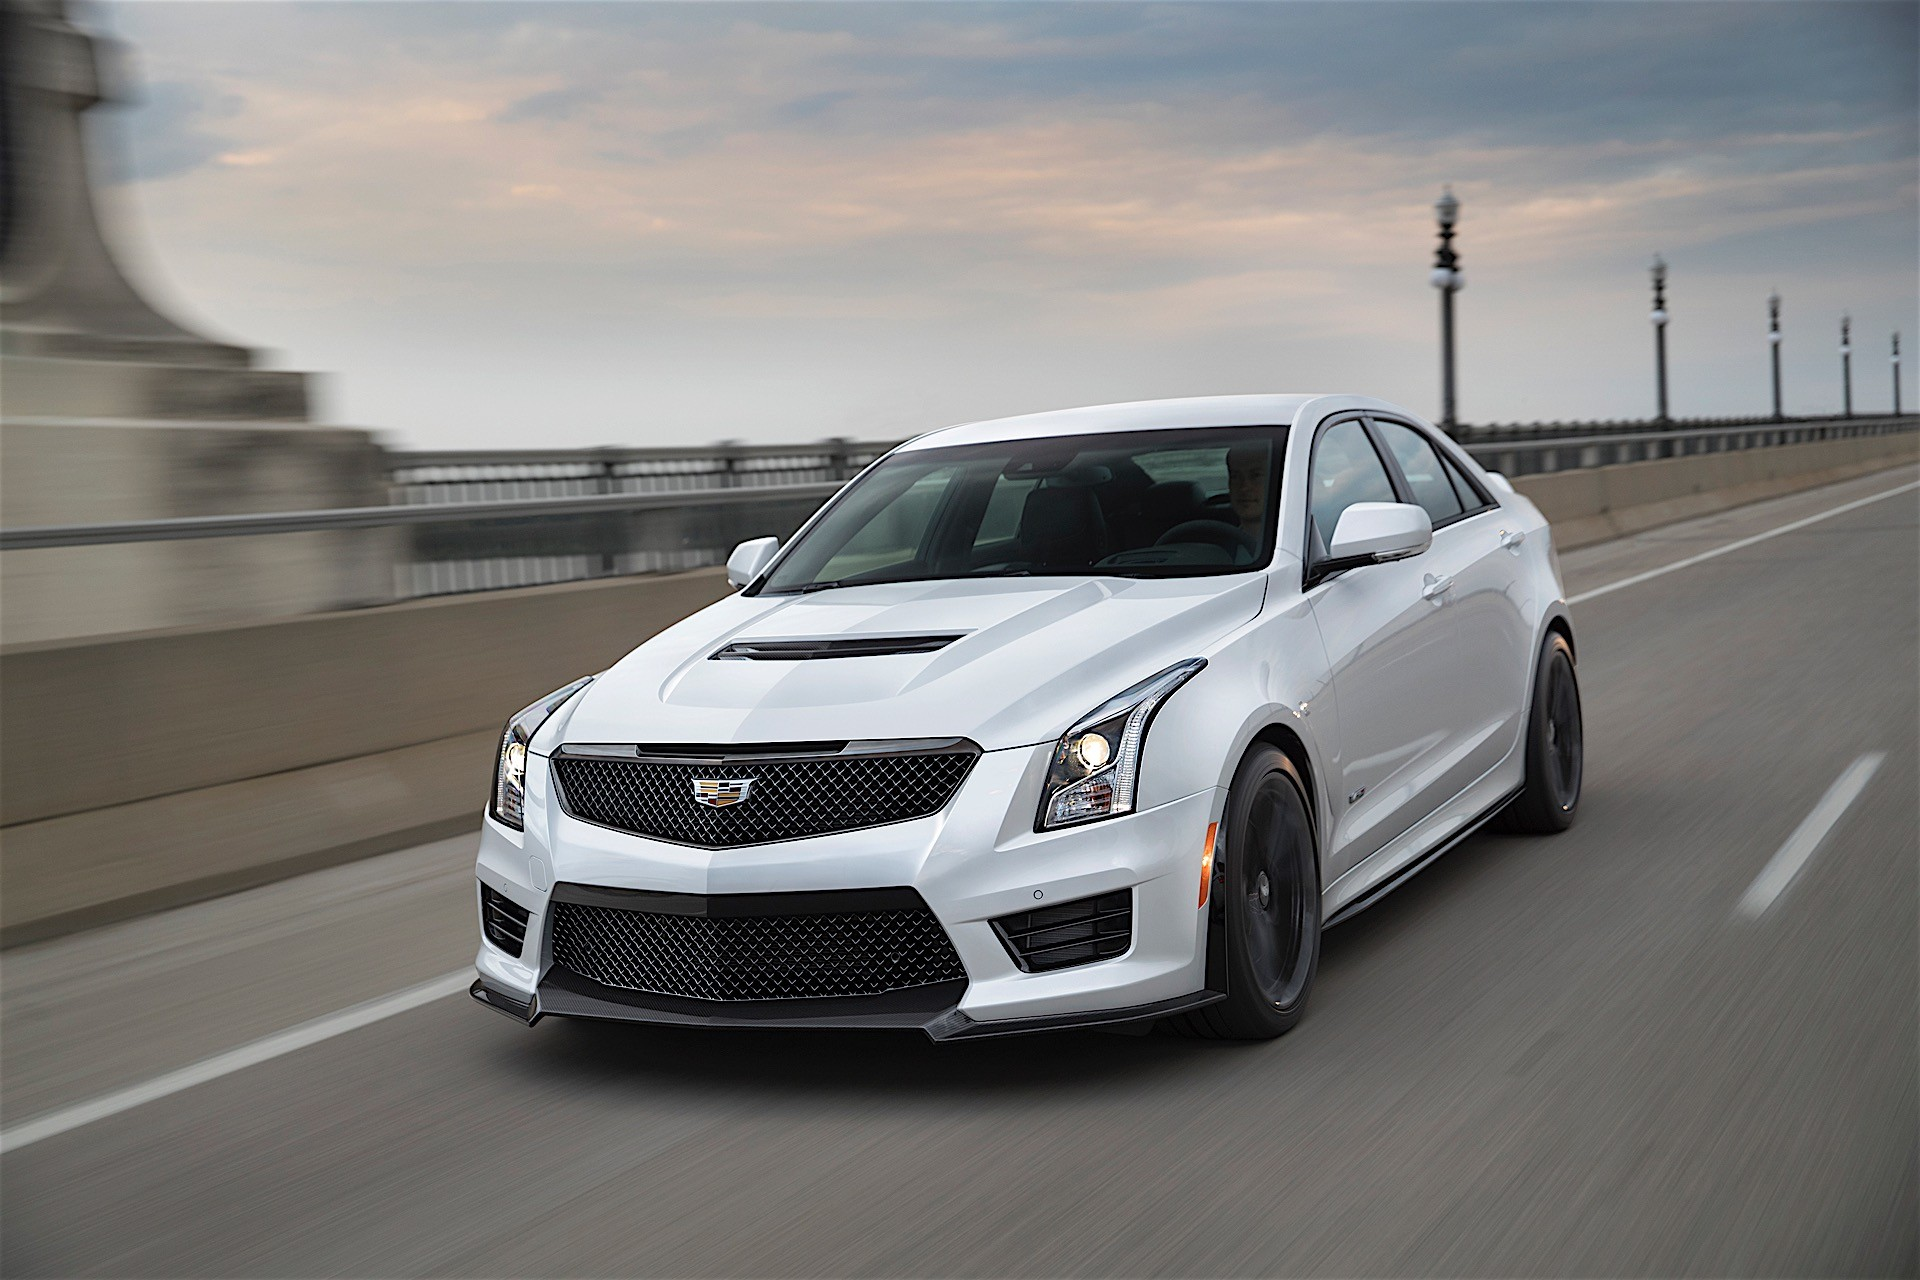 2016 Cadillac Convertible >> Every 2017 Cadillac ATS-V And CTS-V Brings Free ...